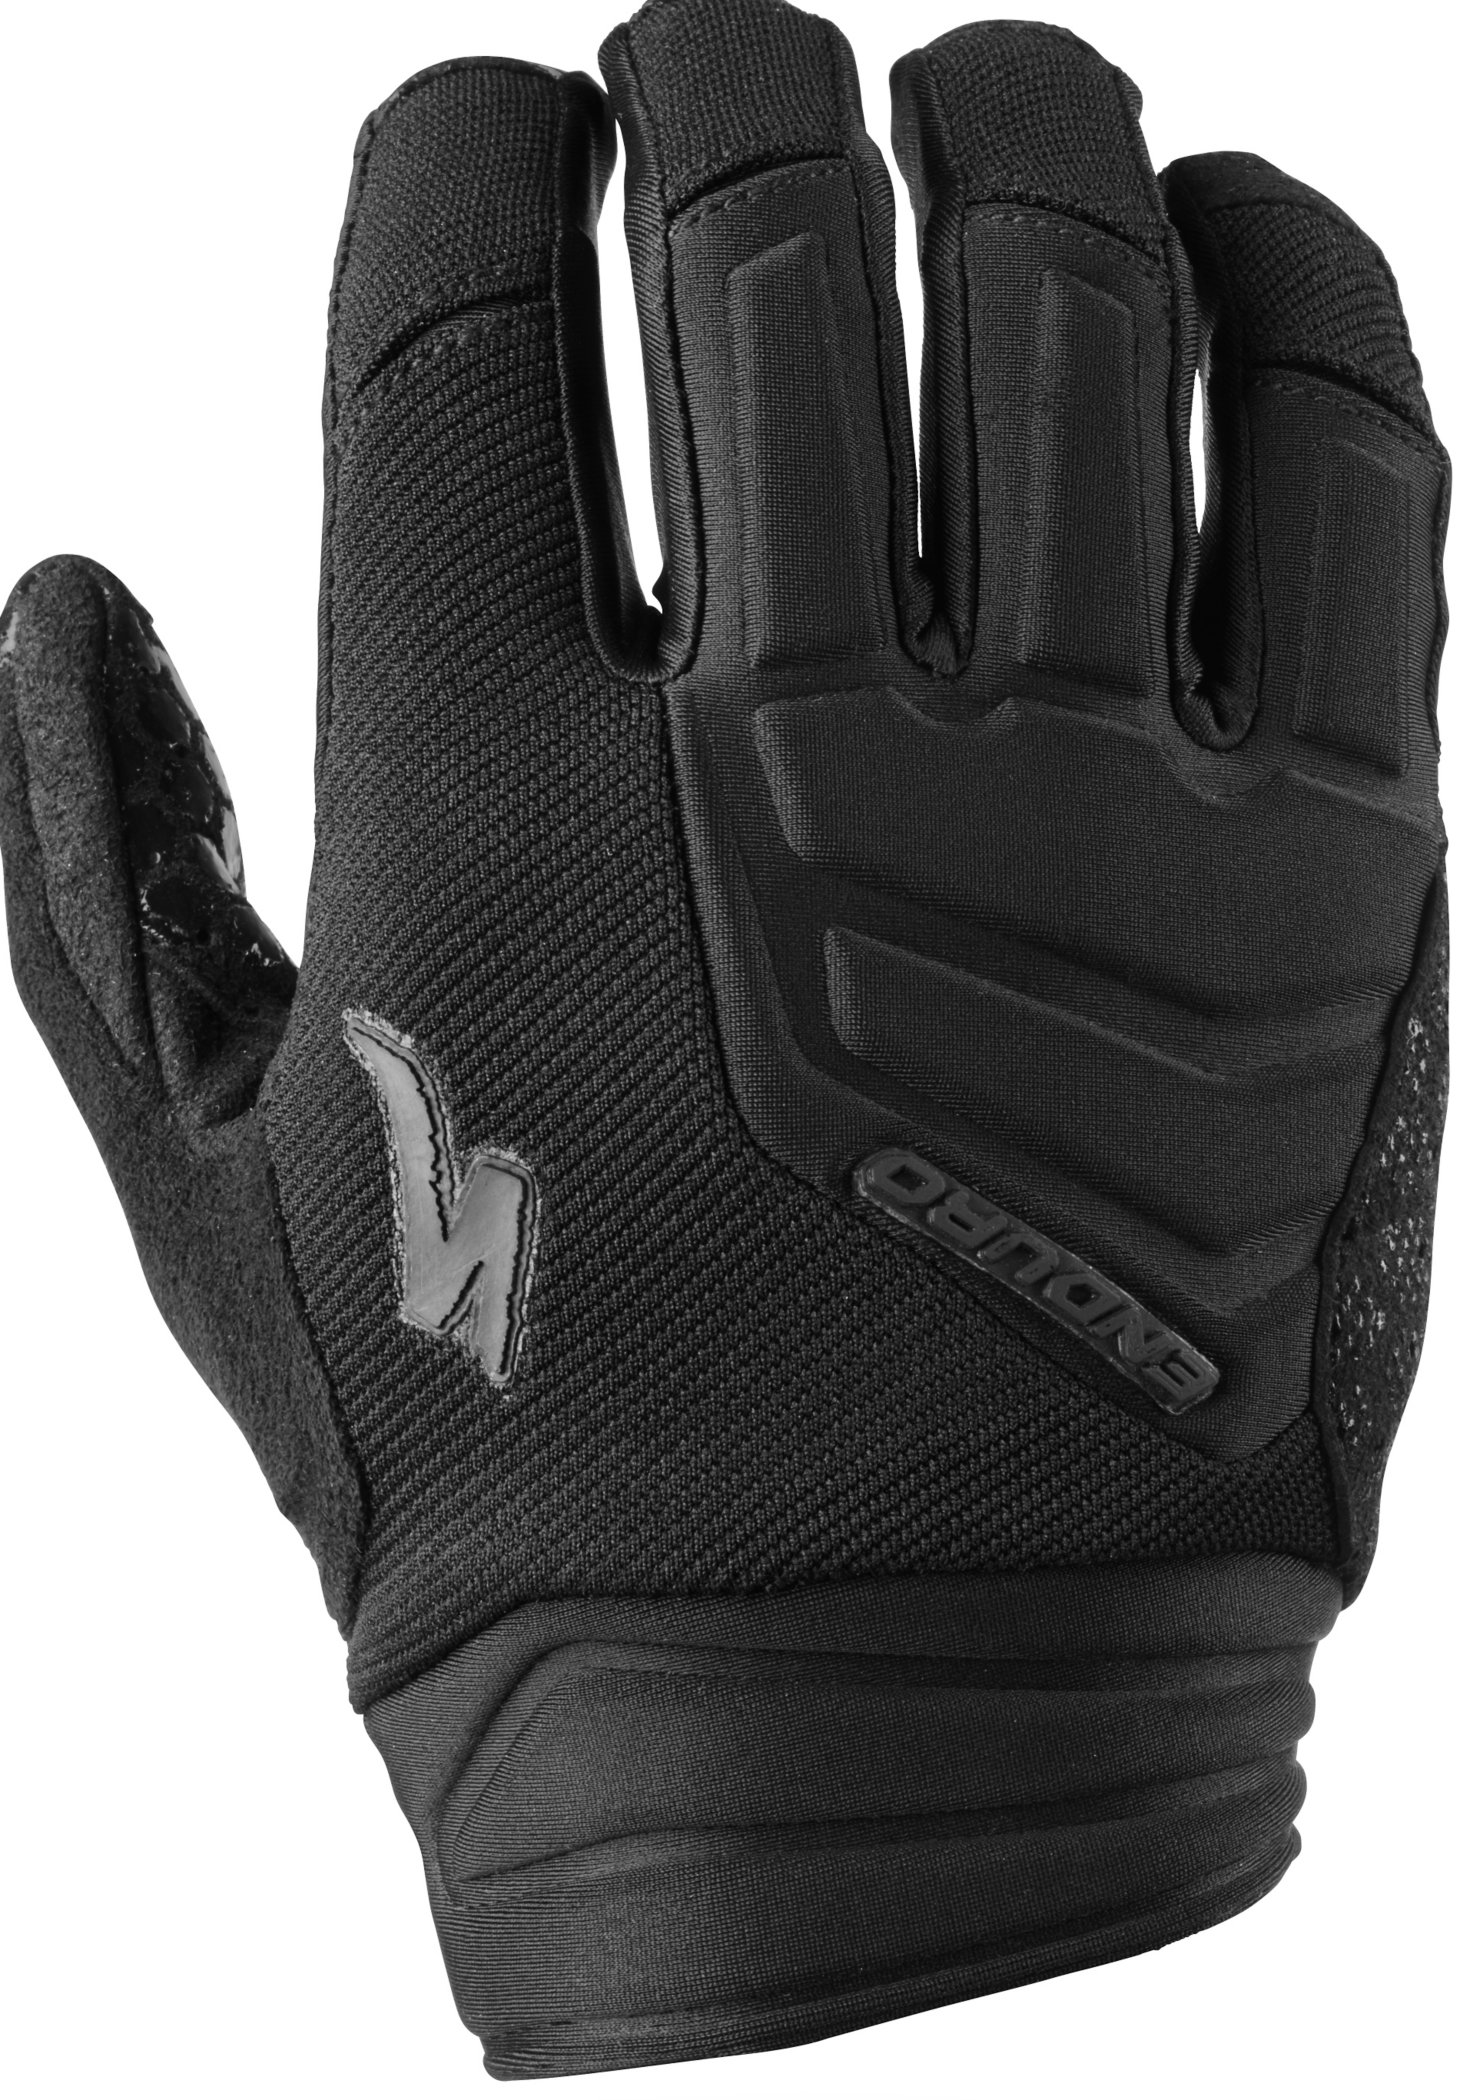 SPECIALIZED ENDURO GLOVE LF BLK S - Alpha Bikes